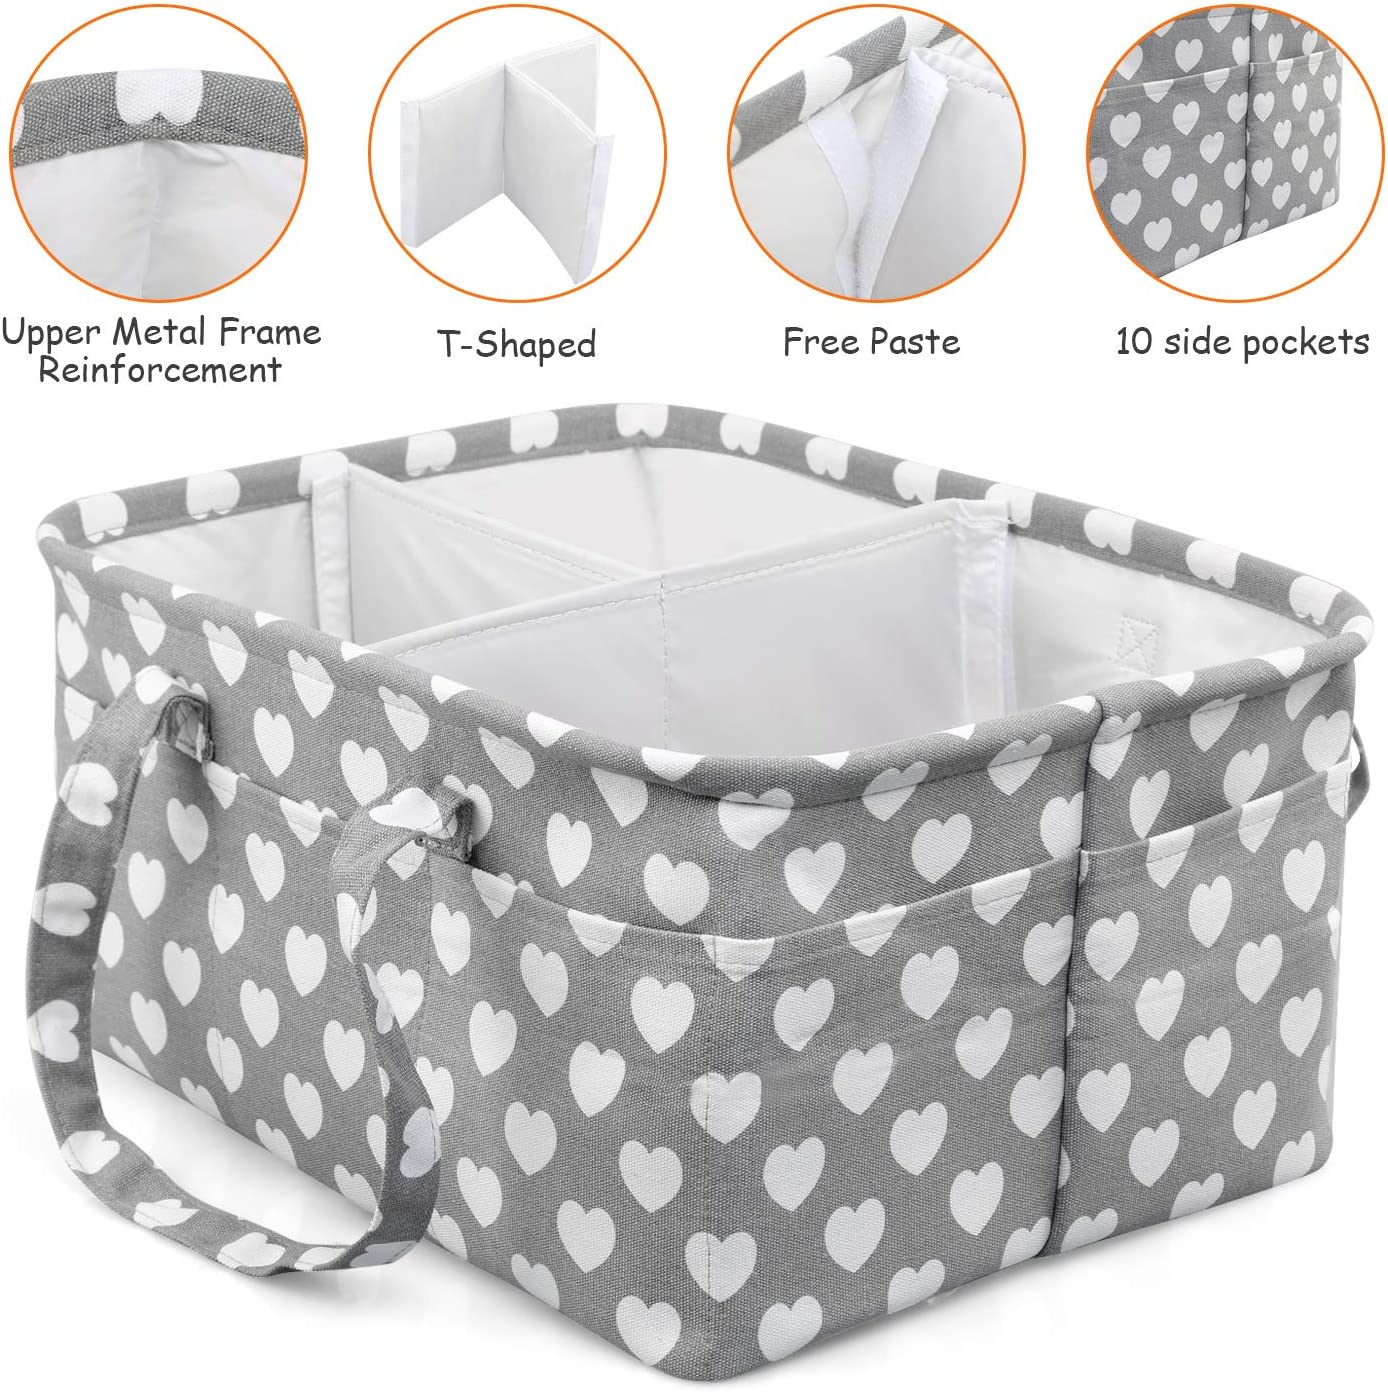 NEWSTYLE Baby Diaper Caddy Organizer Nursery Storage Bin and Car Organizer Cotton Canvas Portable Diaper Storage Basket with Removable Dividers and 10 External Pockets for Diapers and Baby Wipes